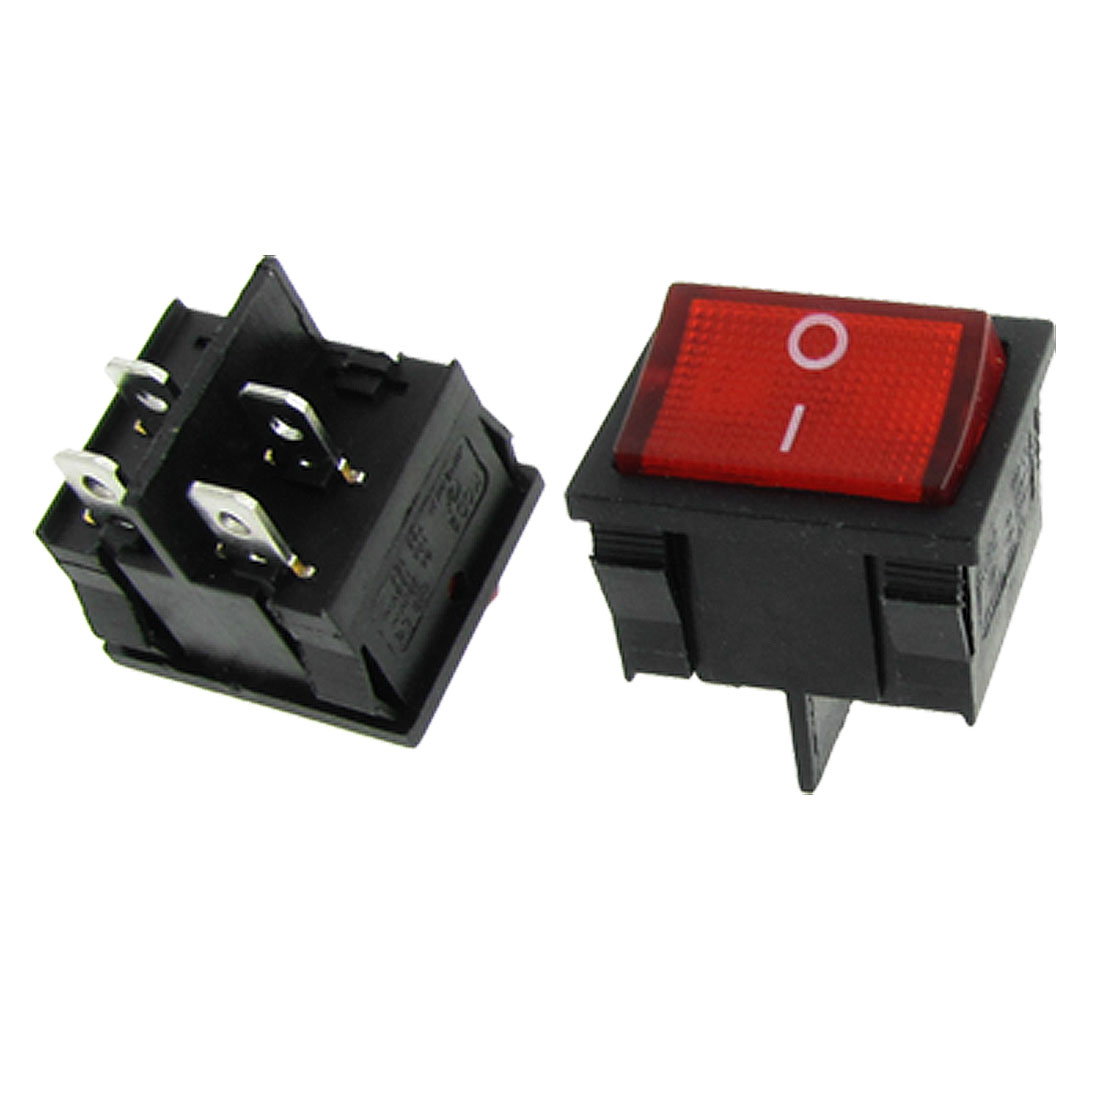 AC 6A/250V 10A/125V DPST On-Off 2 Position Red Neon Light Rocker Switch x 5 Pcs